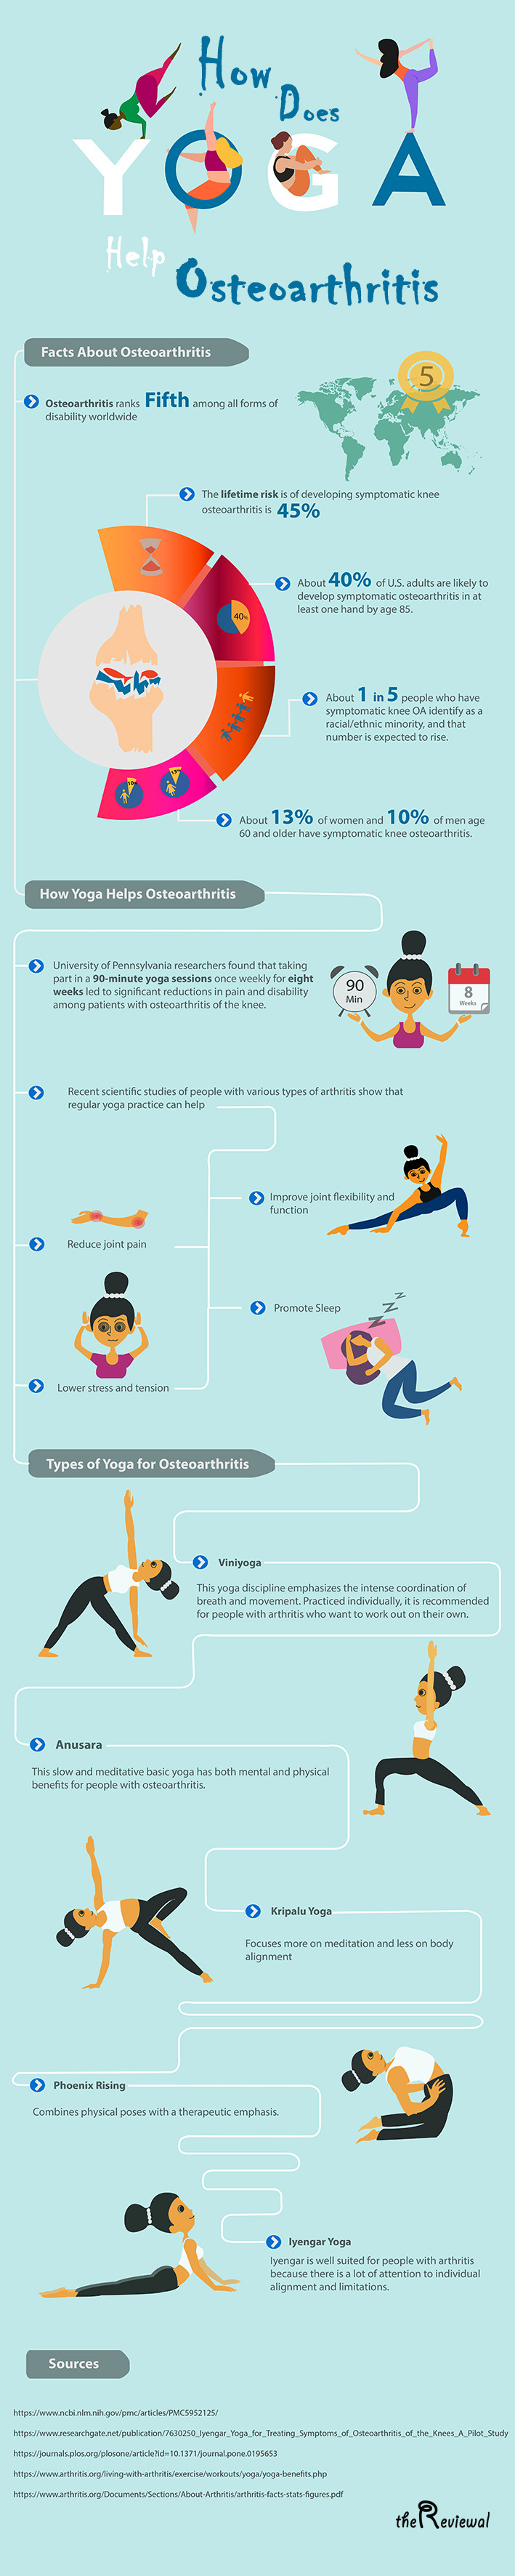 Can Yoga Help You Combat the Effects of Osteoarthritis? -Gentle yoga can help fight your osteoarthritis pain, but start slow, flowing from one pose to the next. Even small simple movement can help your joints. #yoga #osteoarthritis #pain #osteoarthritispain #painremedies #painrelief